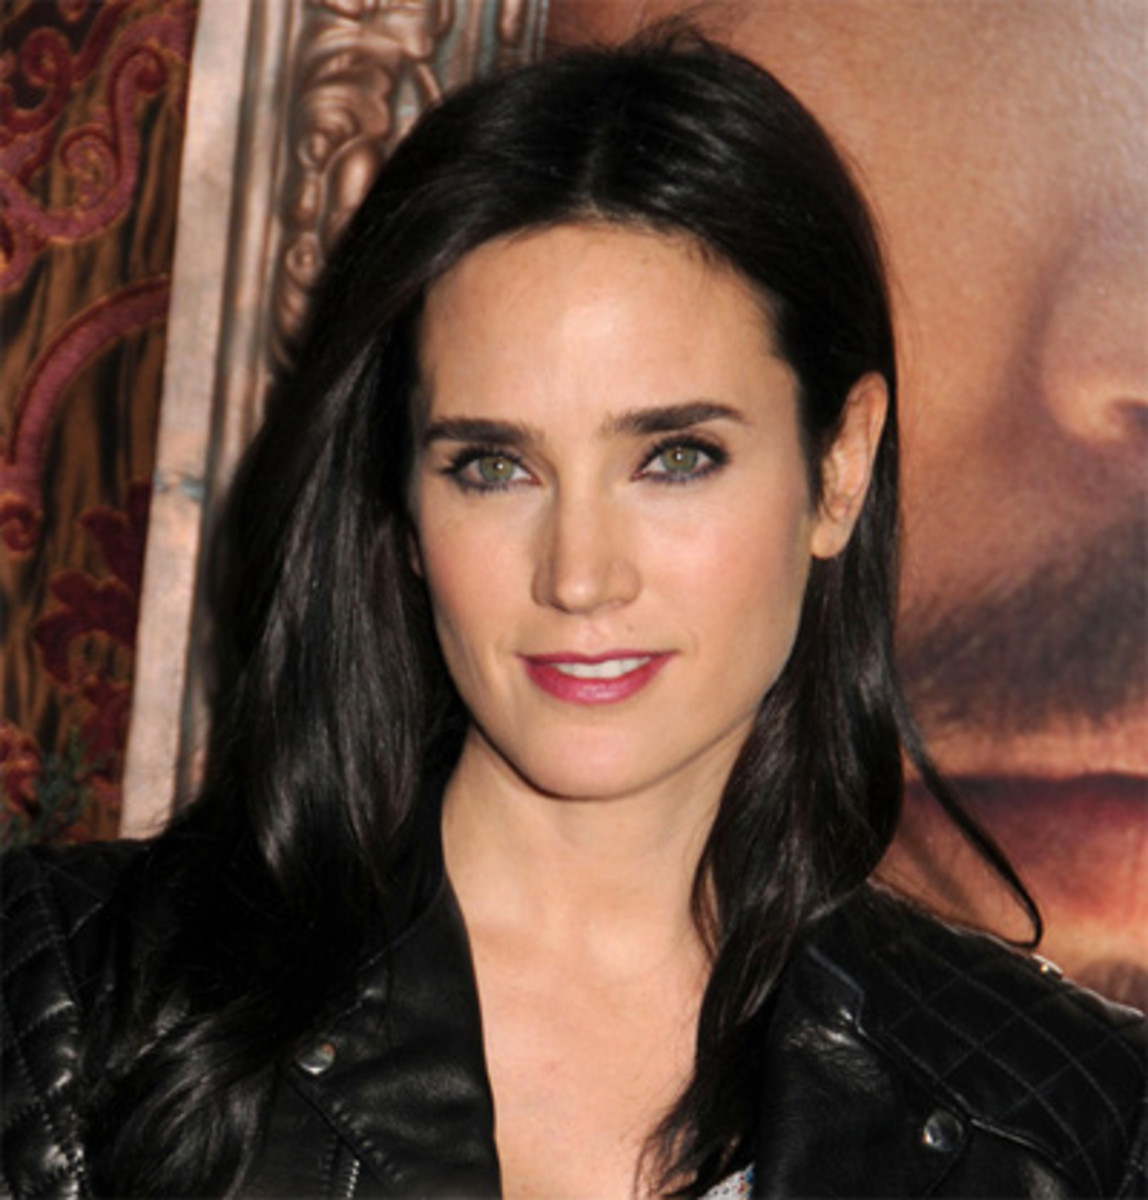 Actress Jennifer Connelly. Famous women with jet black hair color.